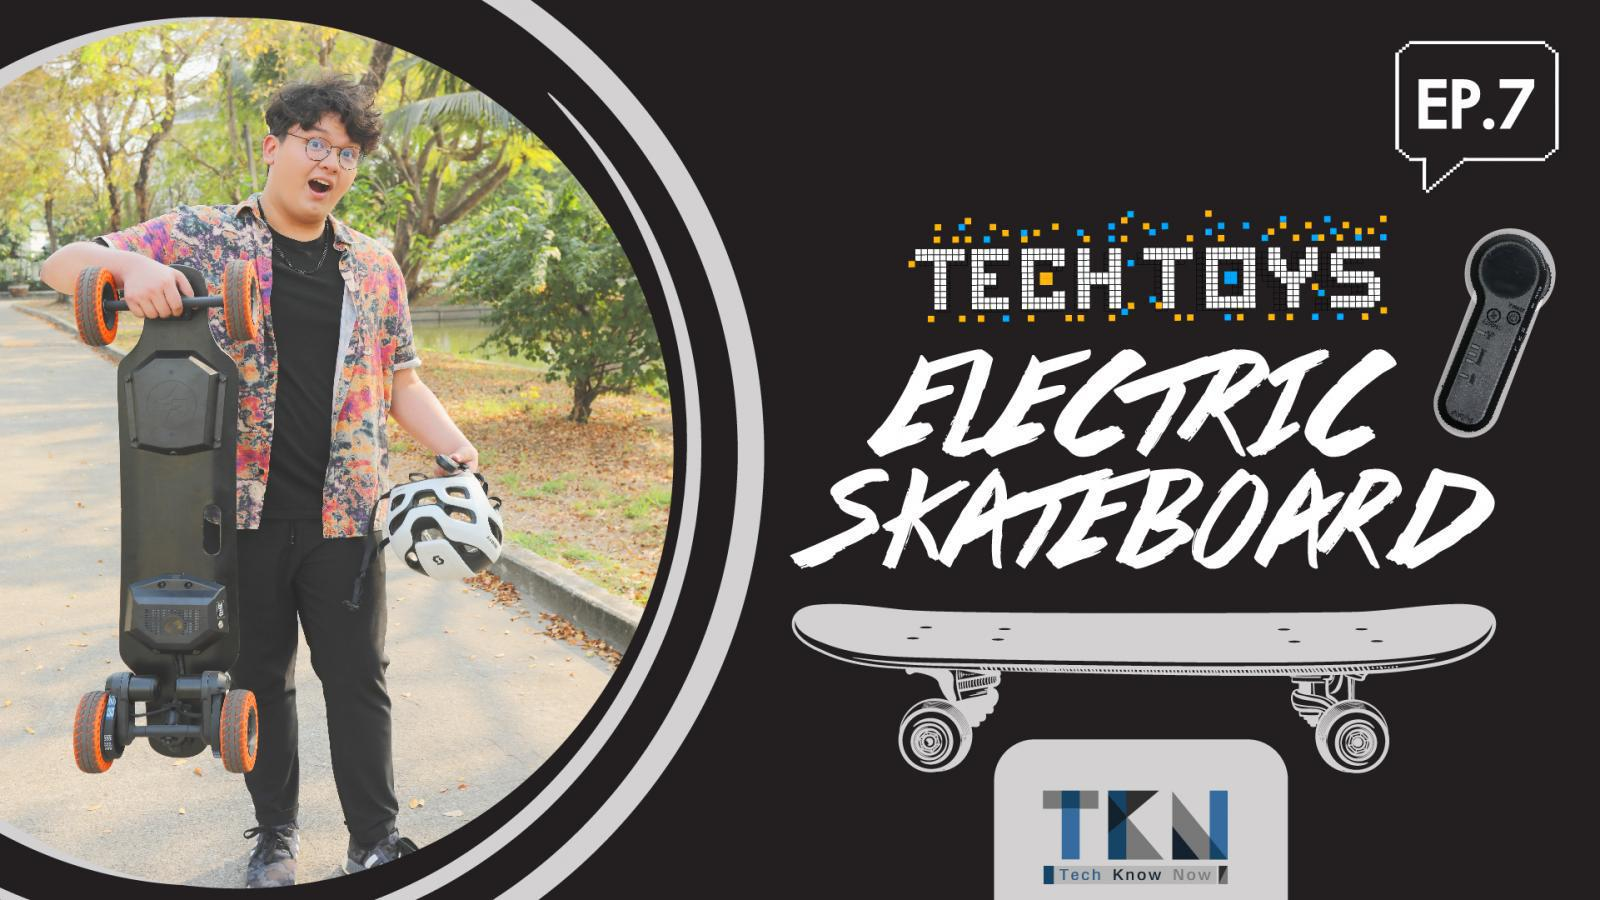 Tech Know Now EP.7 | Electric Skateboard | PPTV HD 36